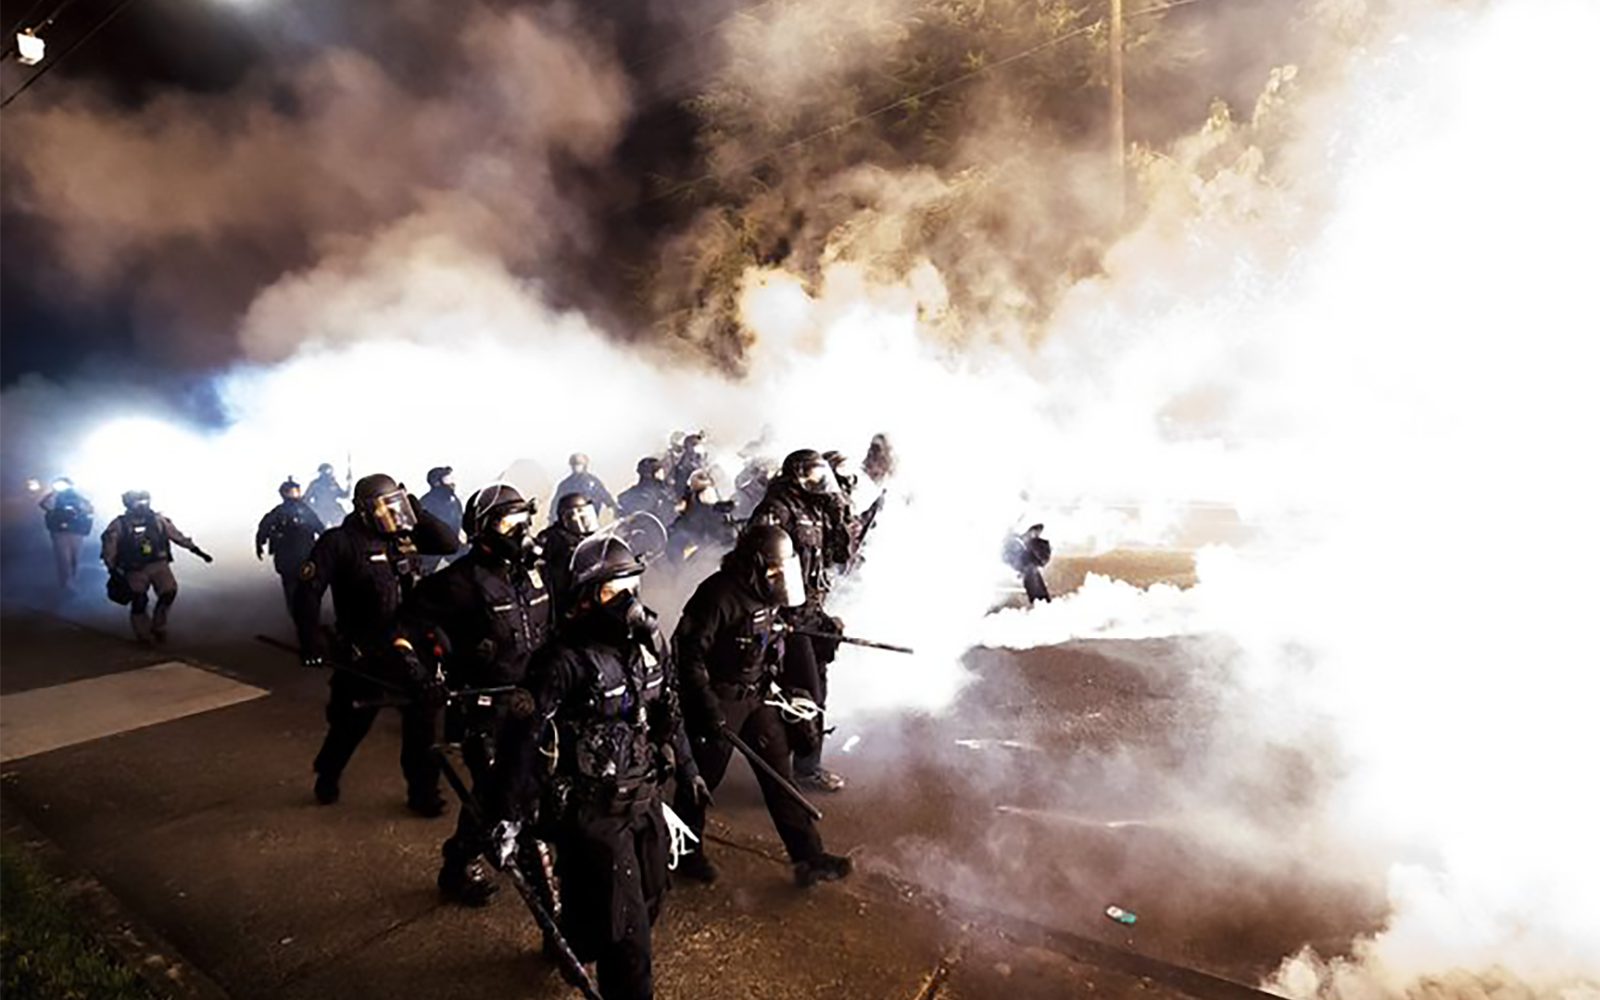 Lawsuit accuses Homeland Security of violating environmental law with Portland tear gas deployment